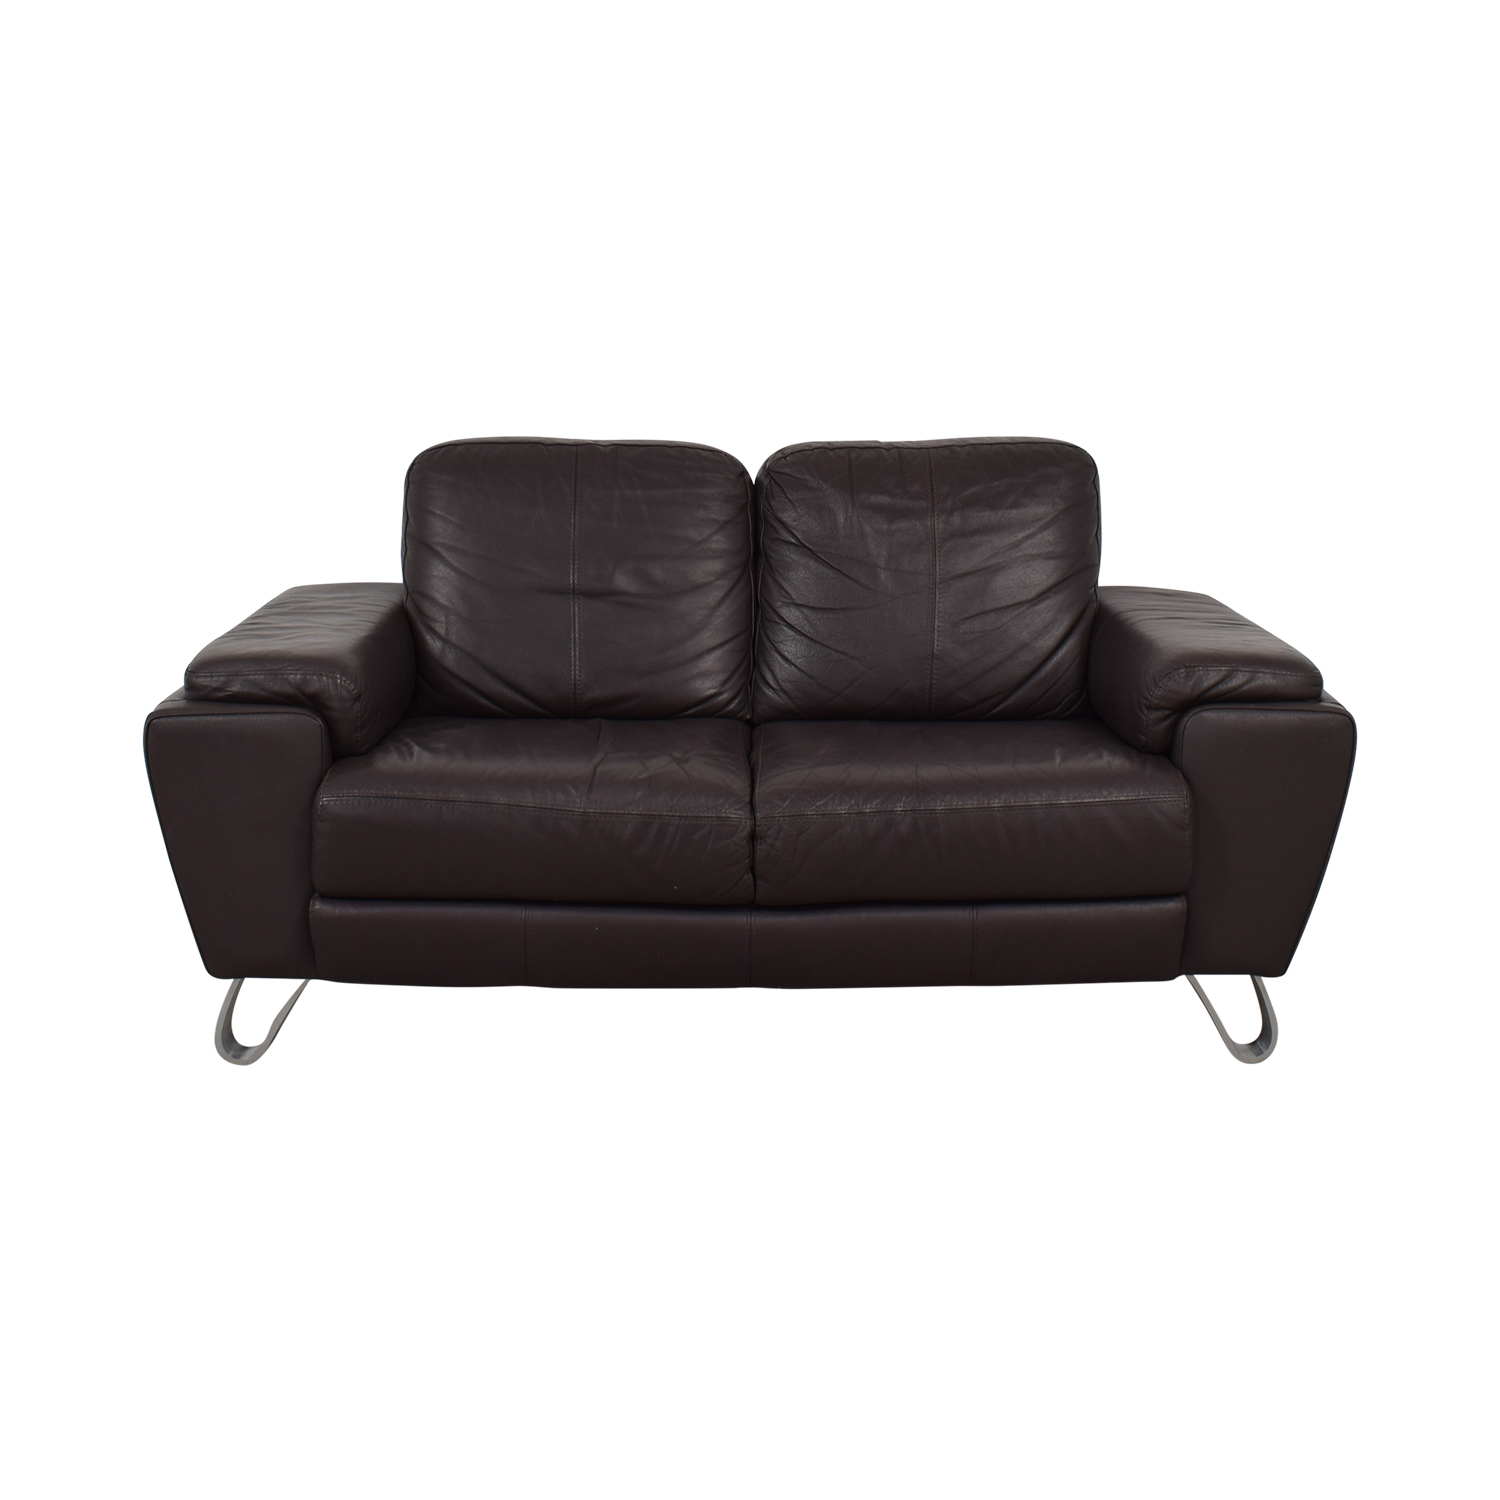 Michaelangelo Design Brown Two-Cushion Loveseat sale